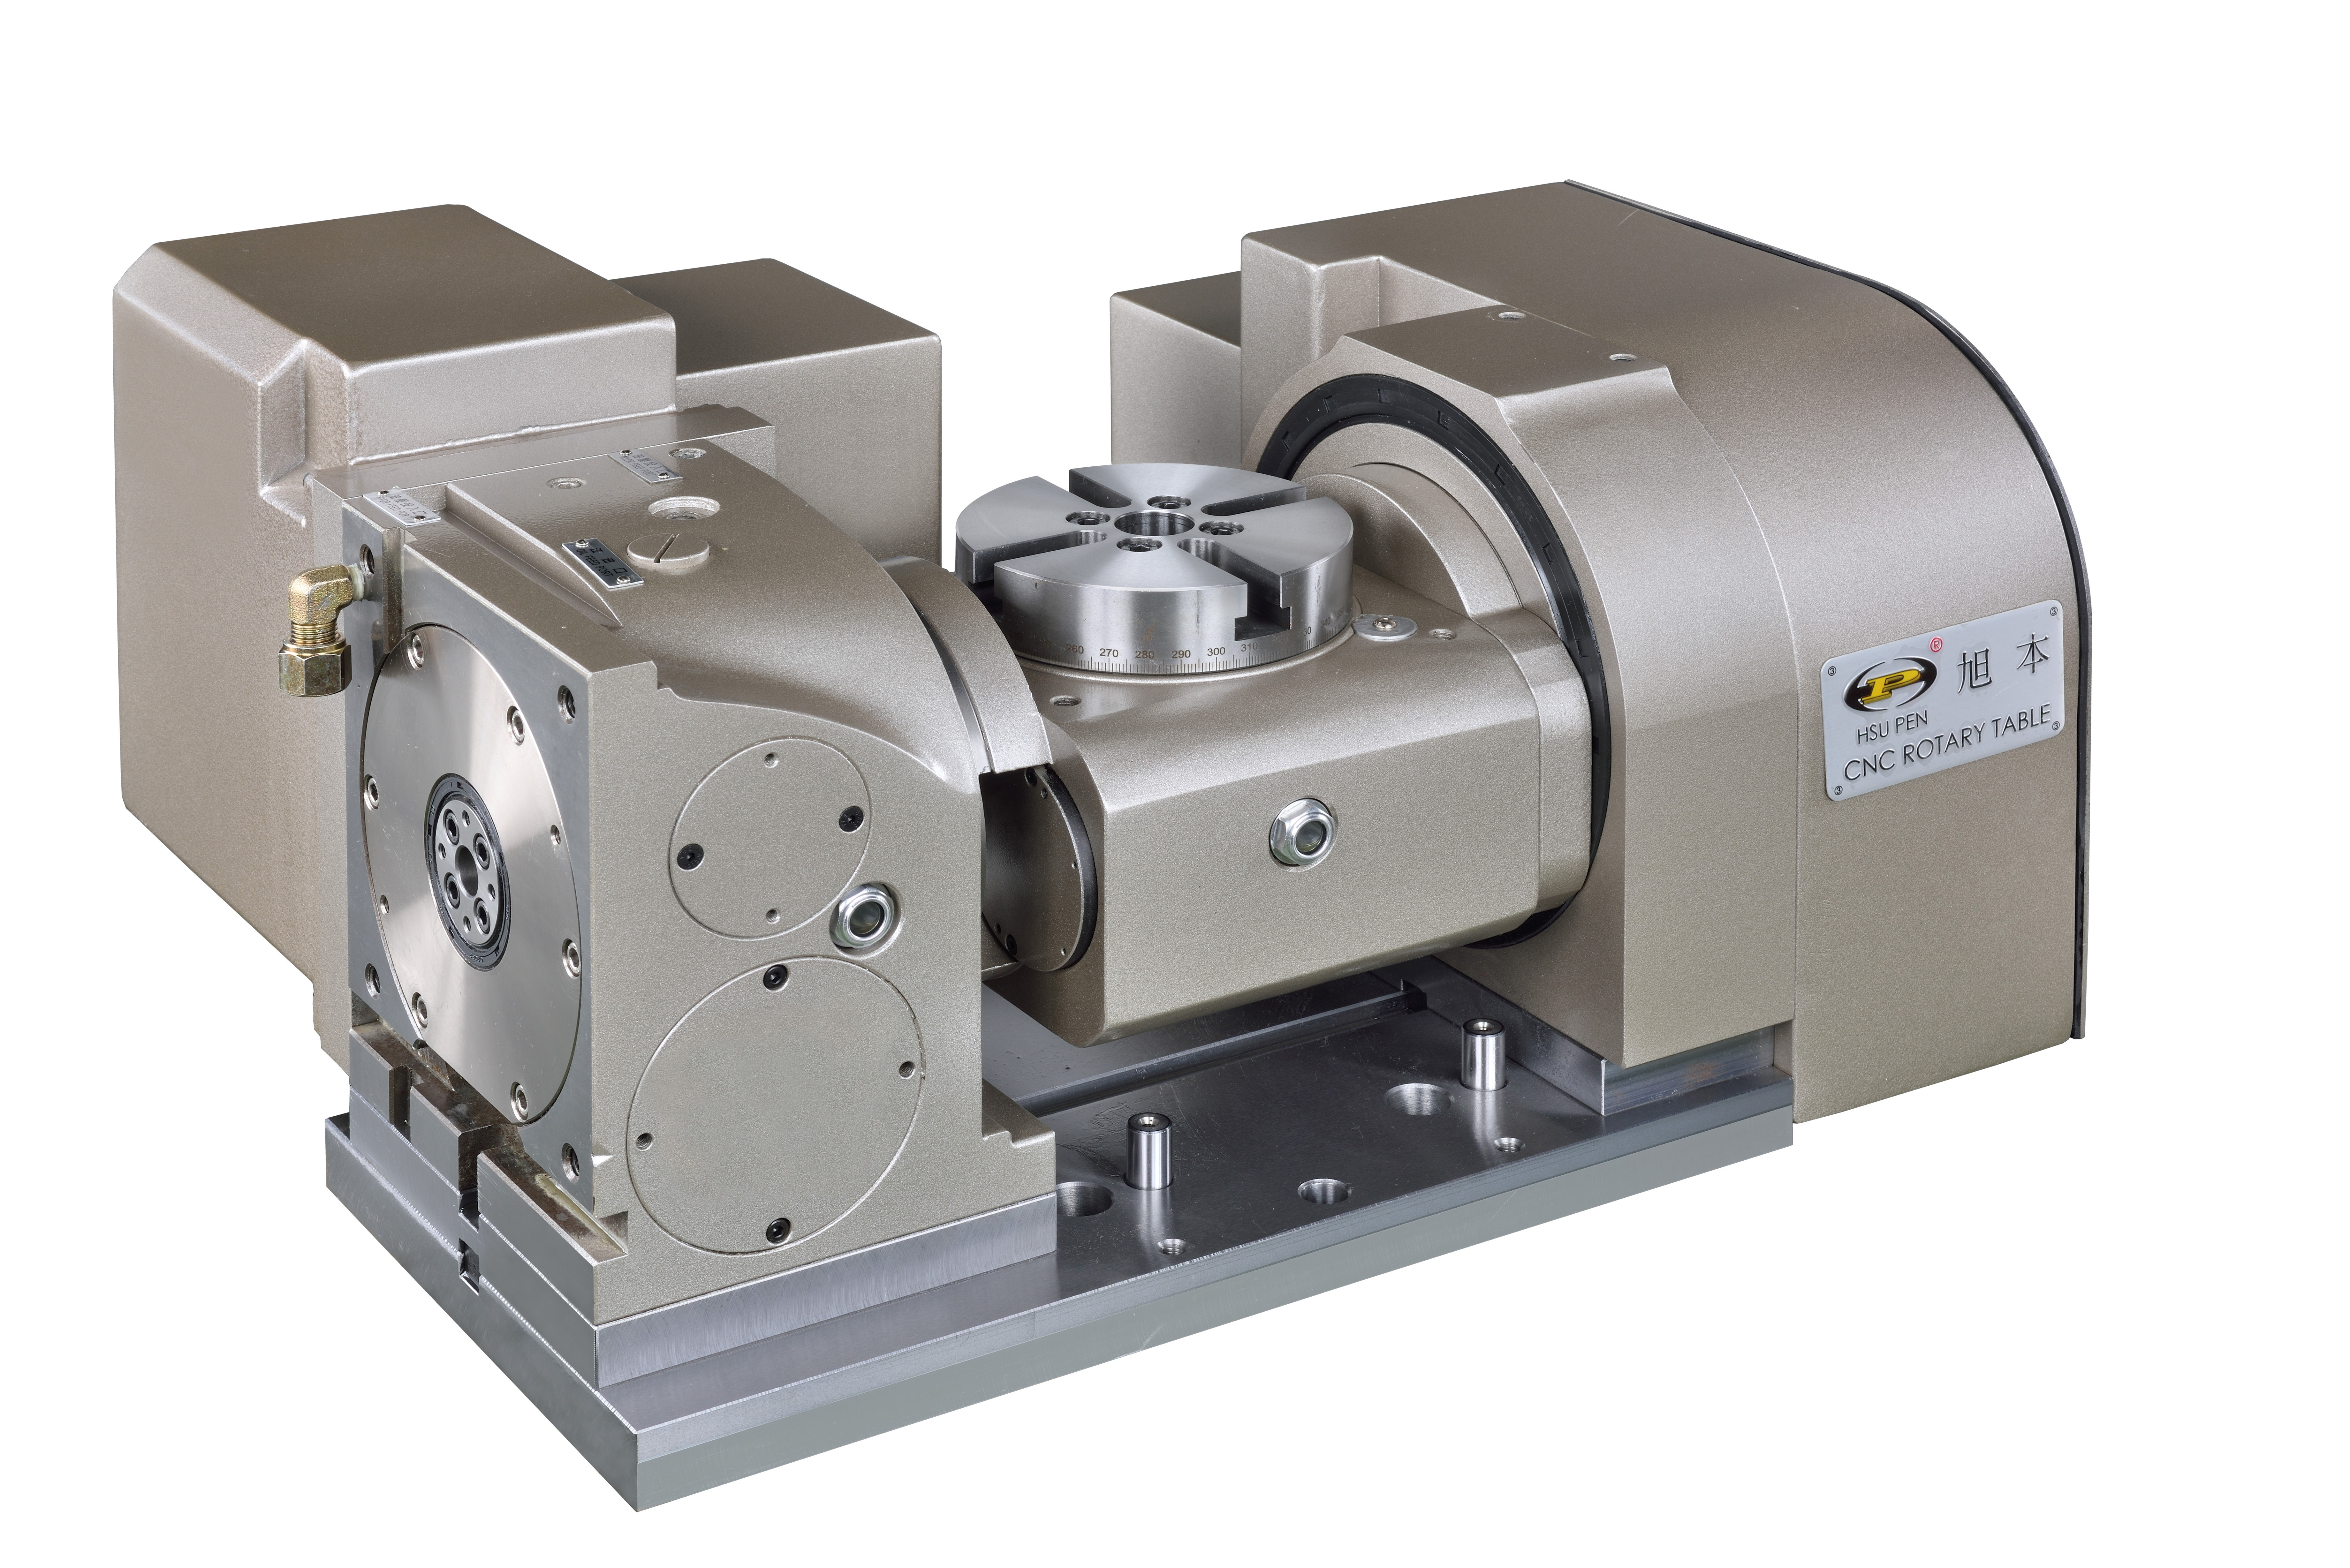 5-AXIS TILTING SWIVELING ROTARY TABLE